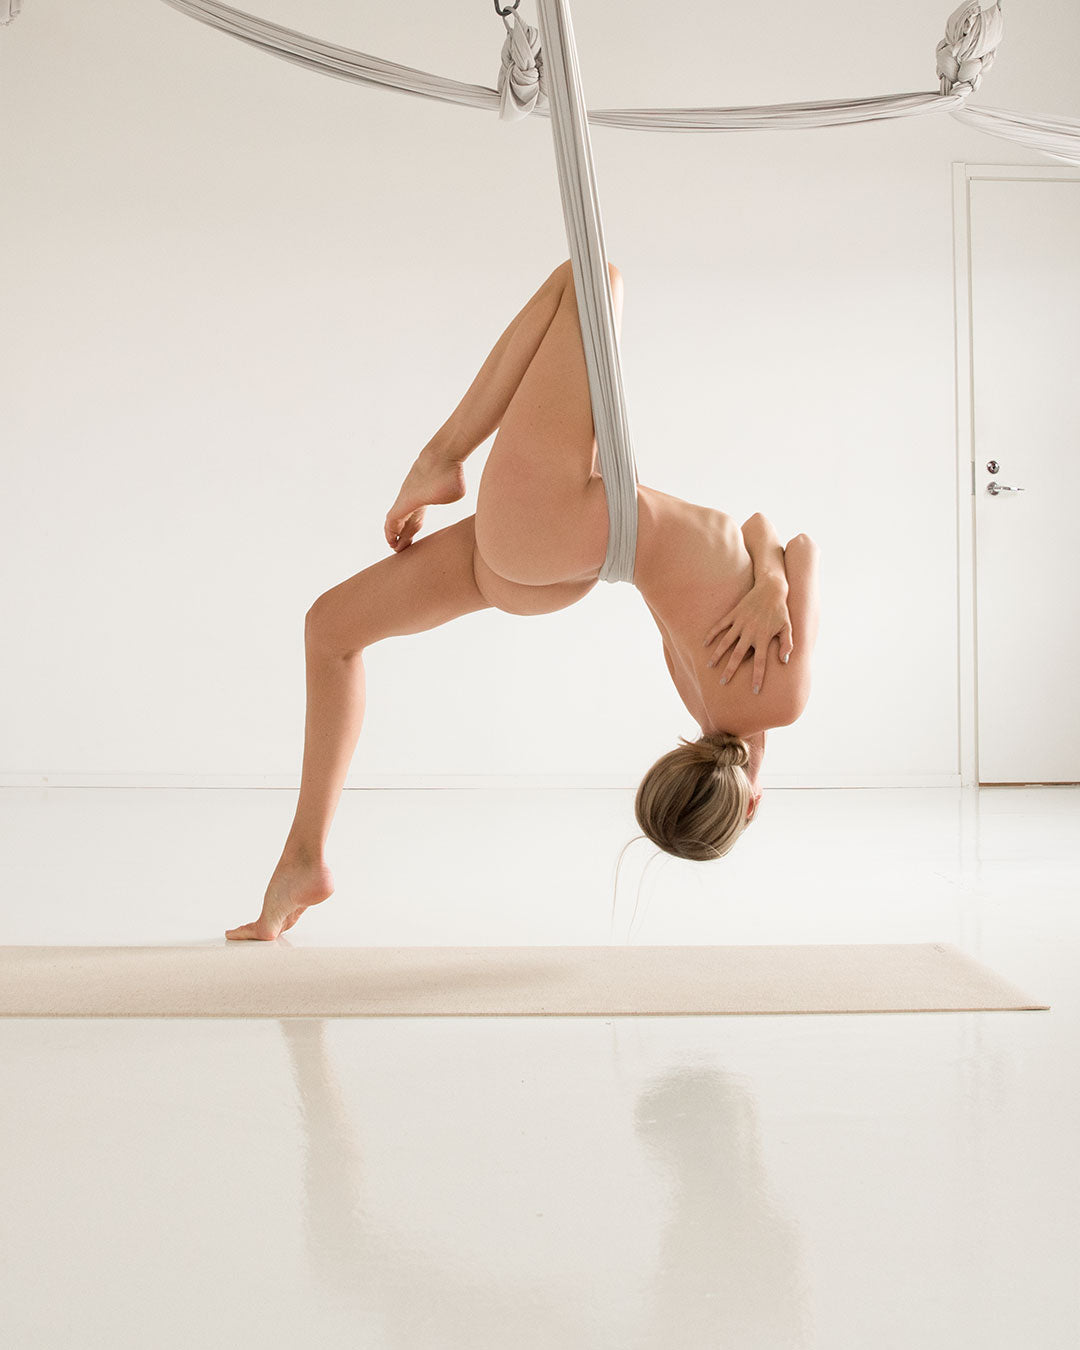 Yoga girl practicing aerial yoga